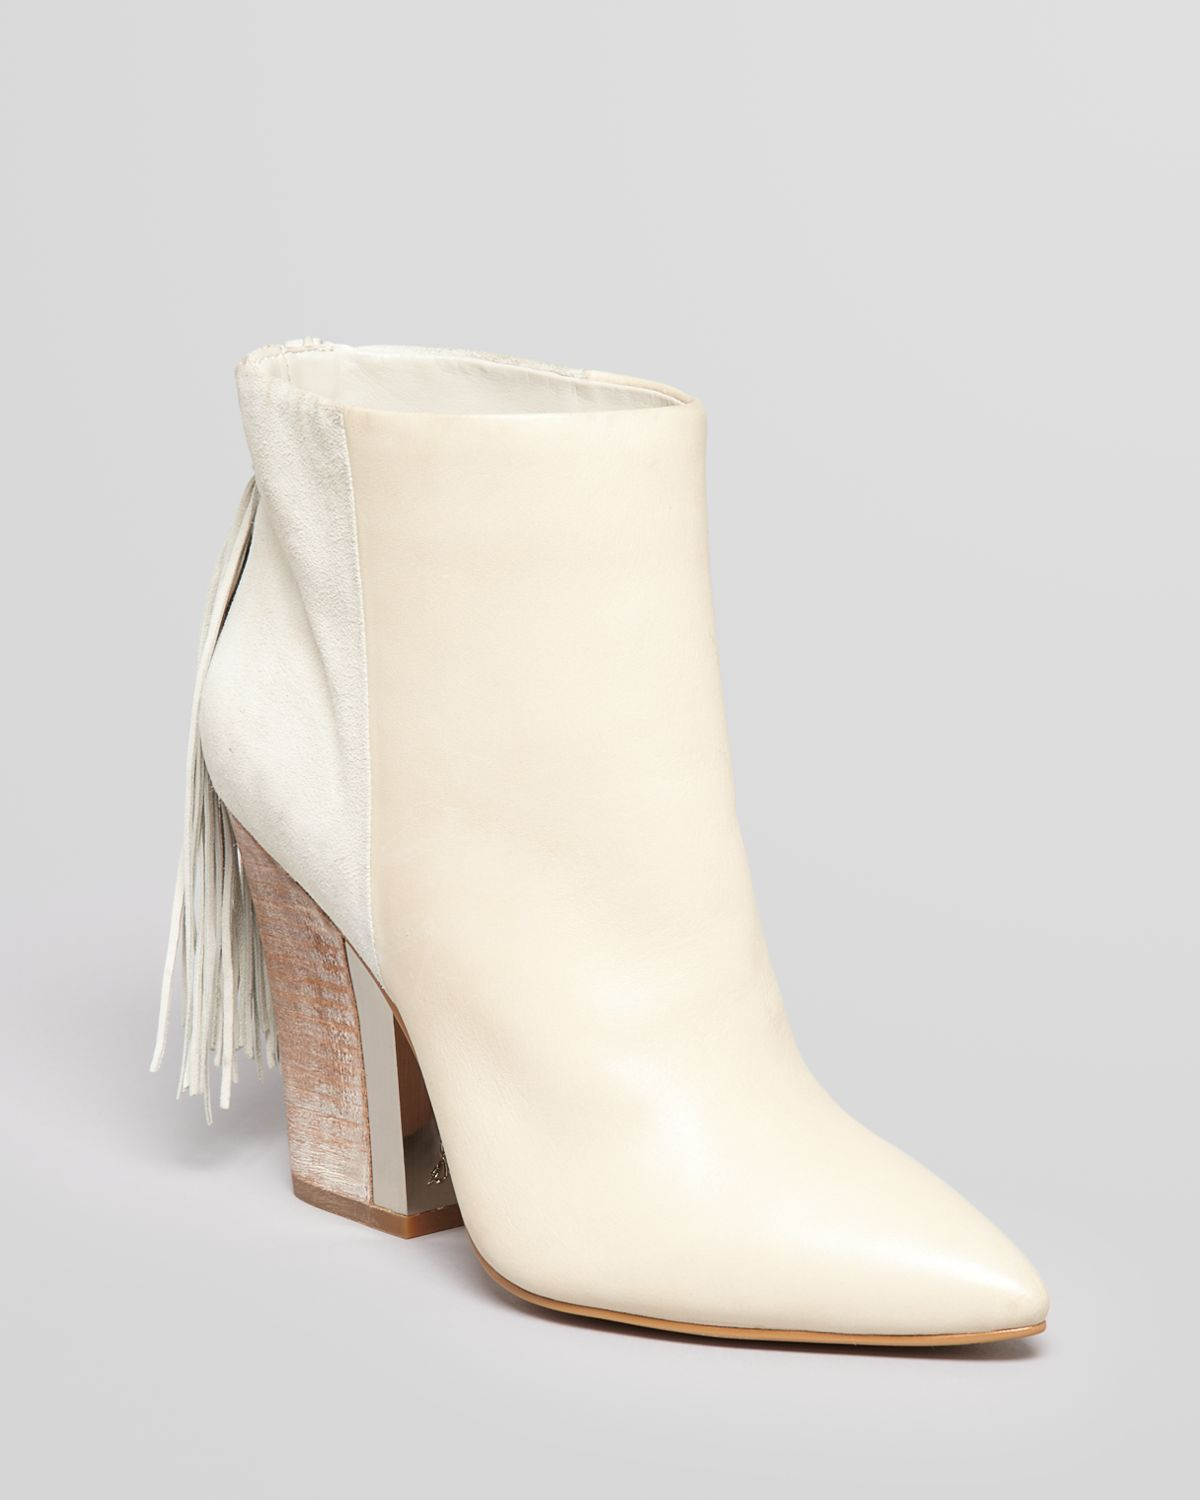 81c924f056066a Lyst - Sam Edelman Booties Mariel High Heel with Fringe Back in Natural